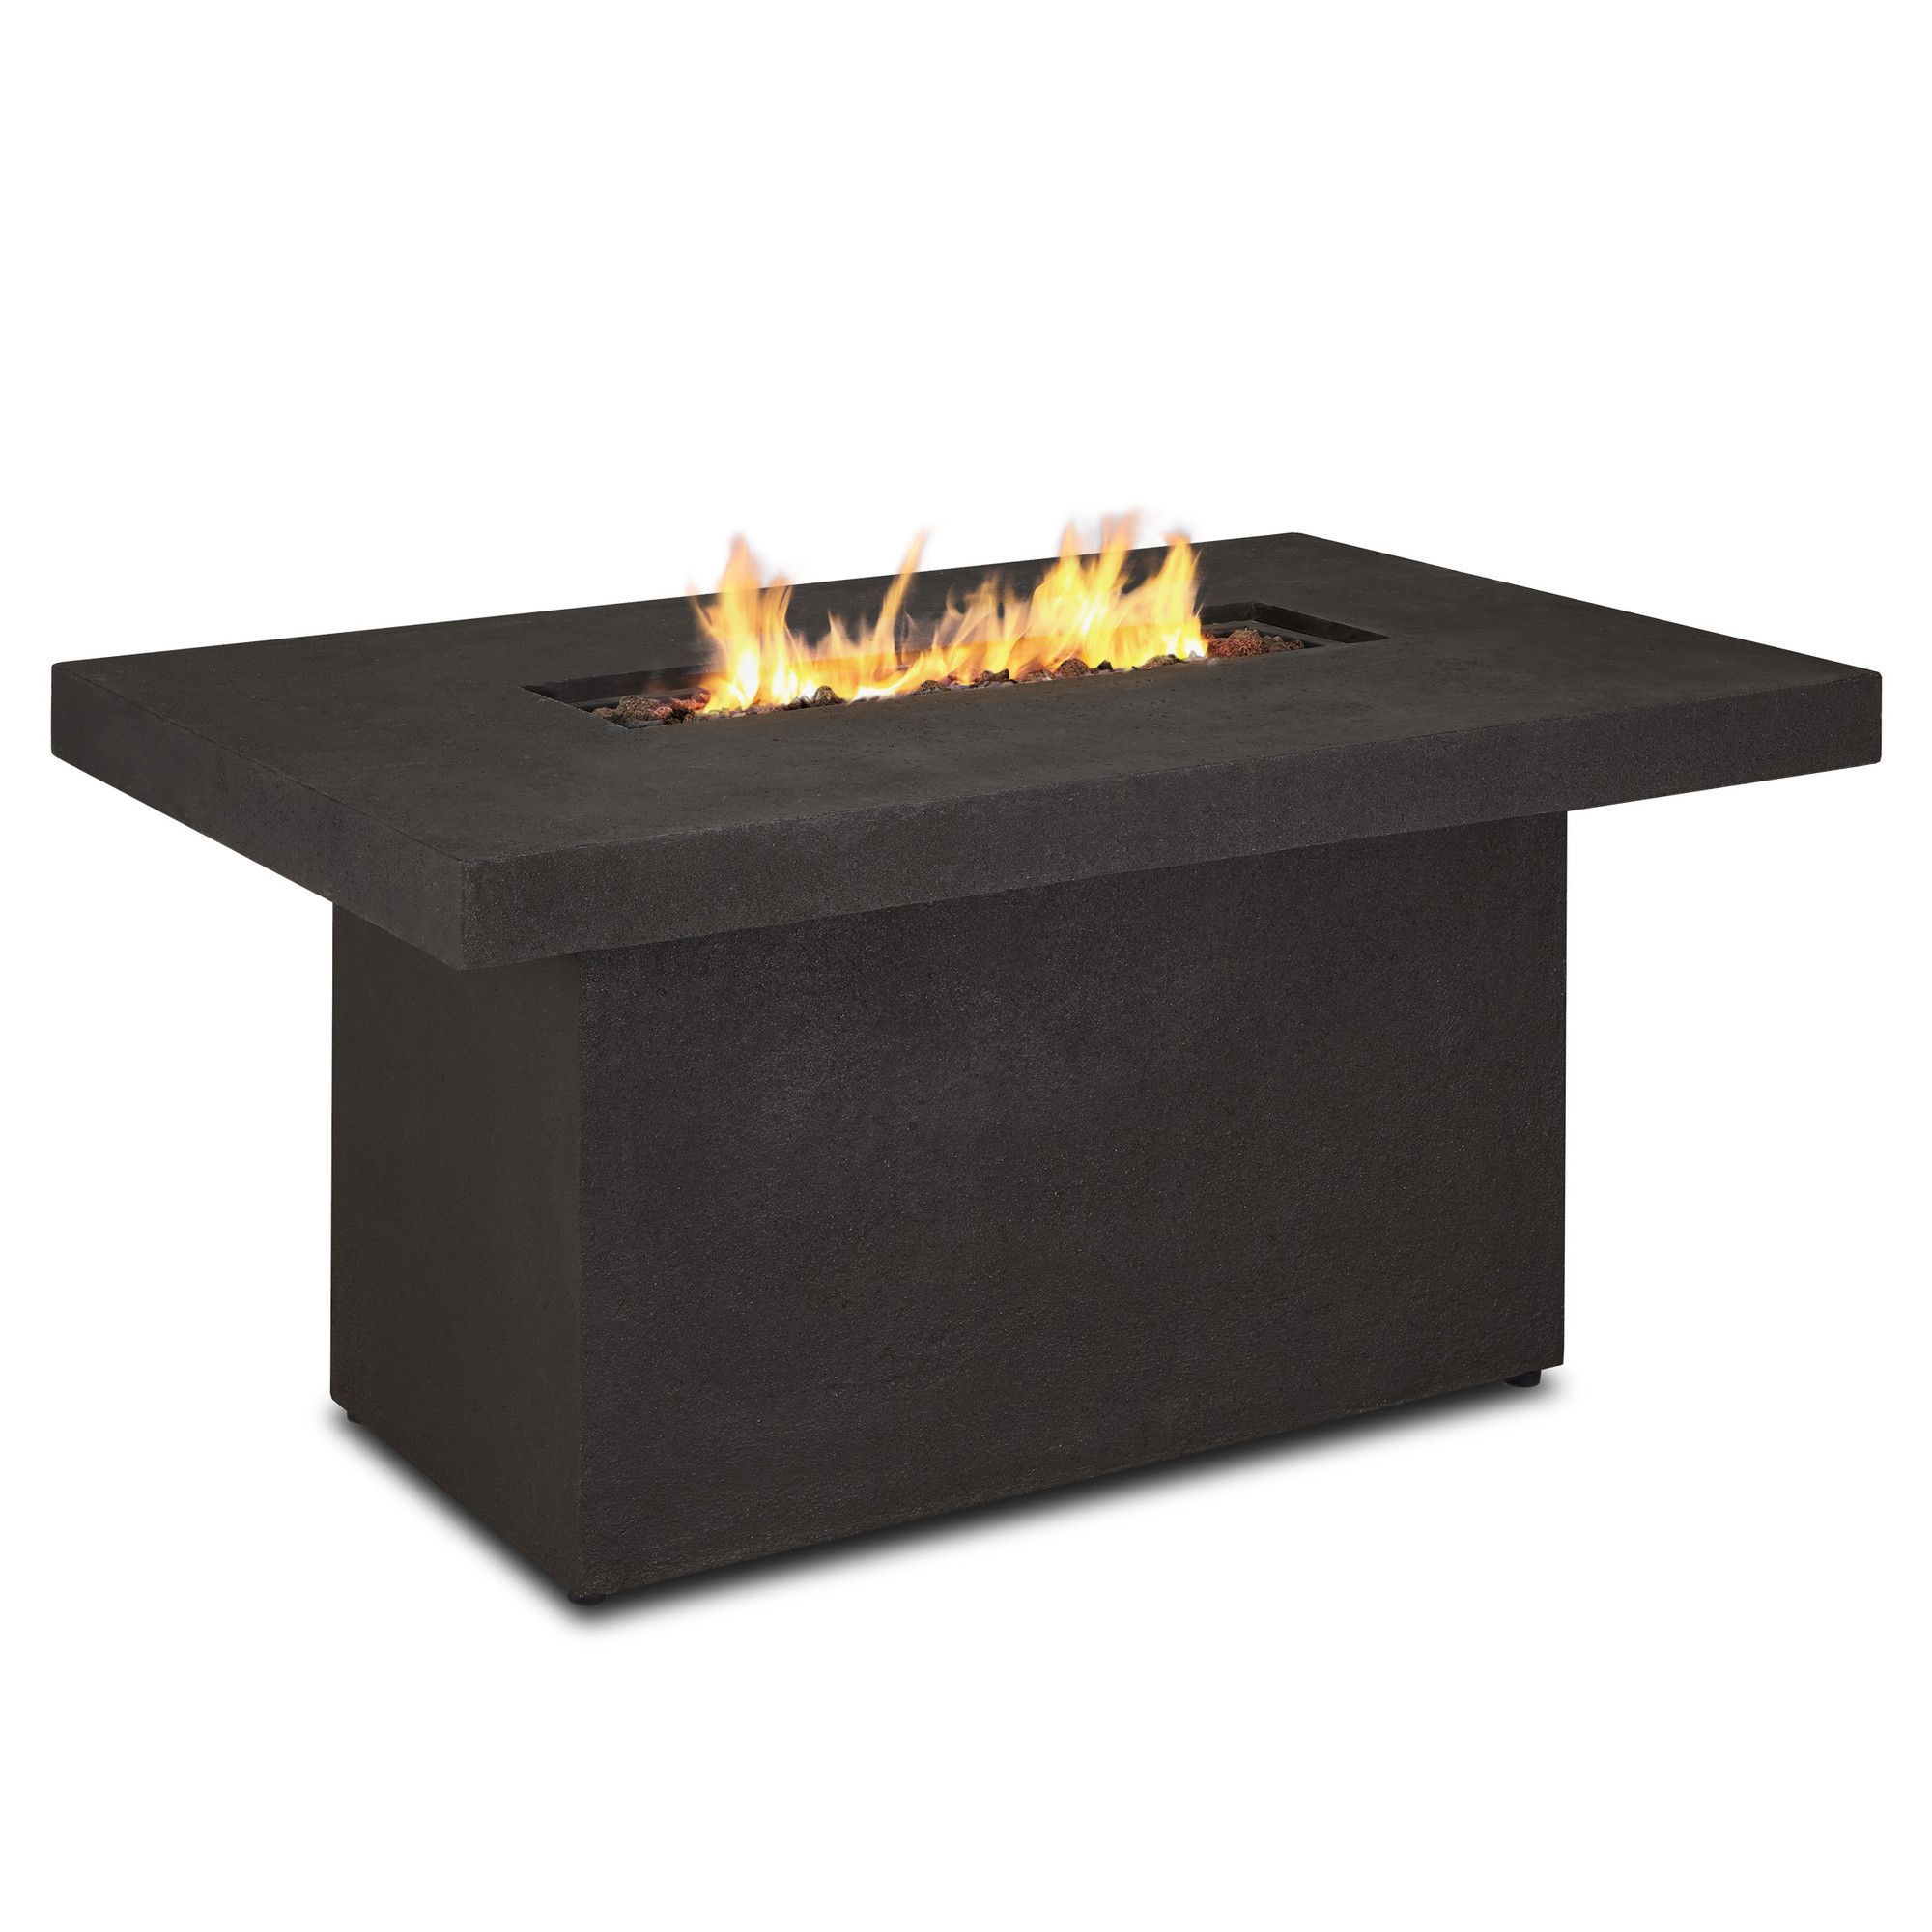 d744ad83b5570baf6f4add083d2f62a1 Top Result 50 Awesome Concrete Fire Pit Bowl Photos 2018 Kae2